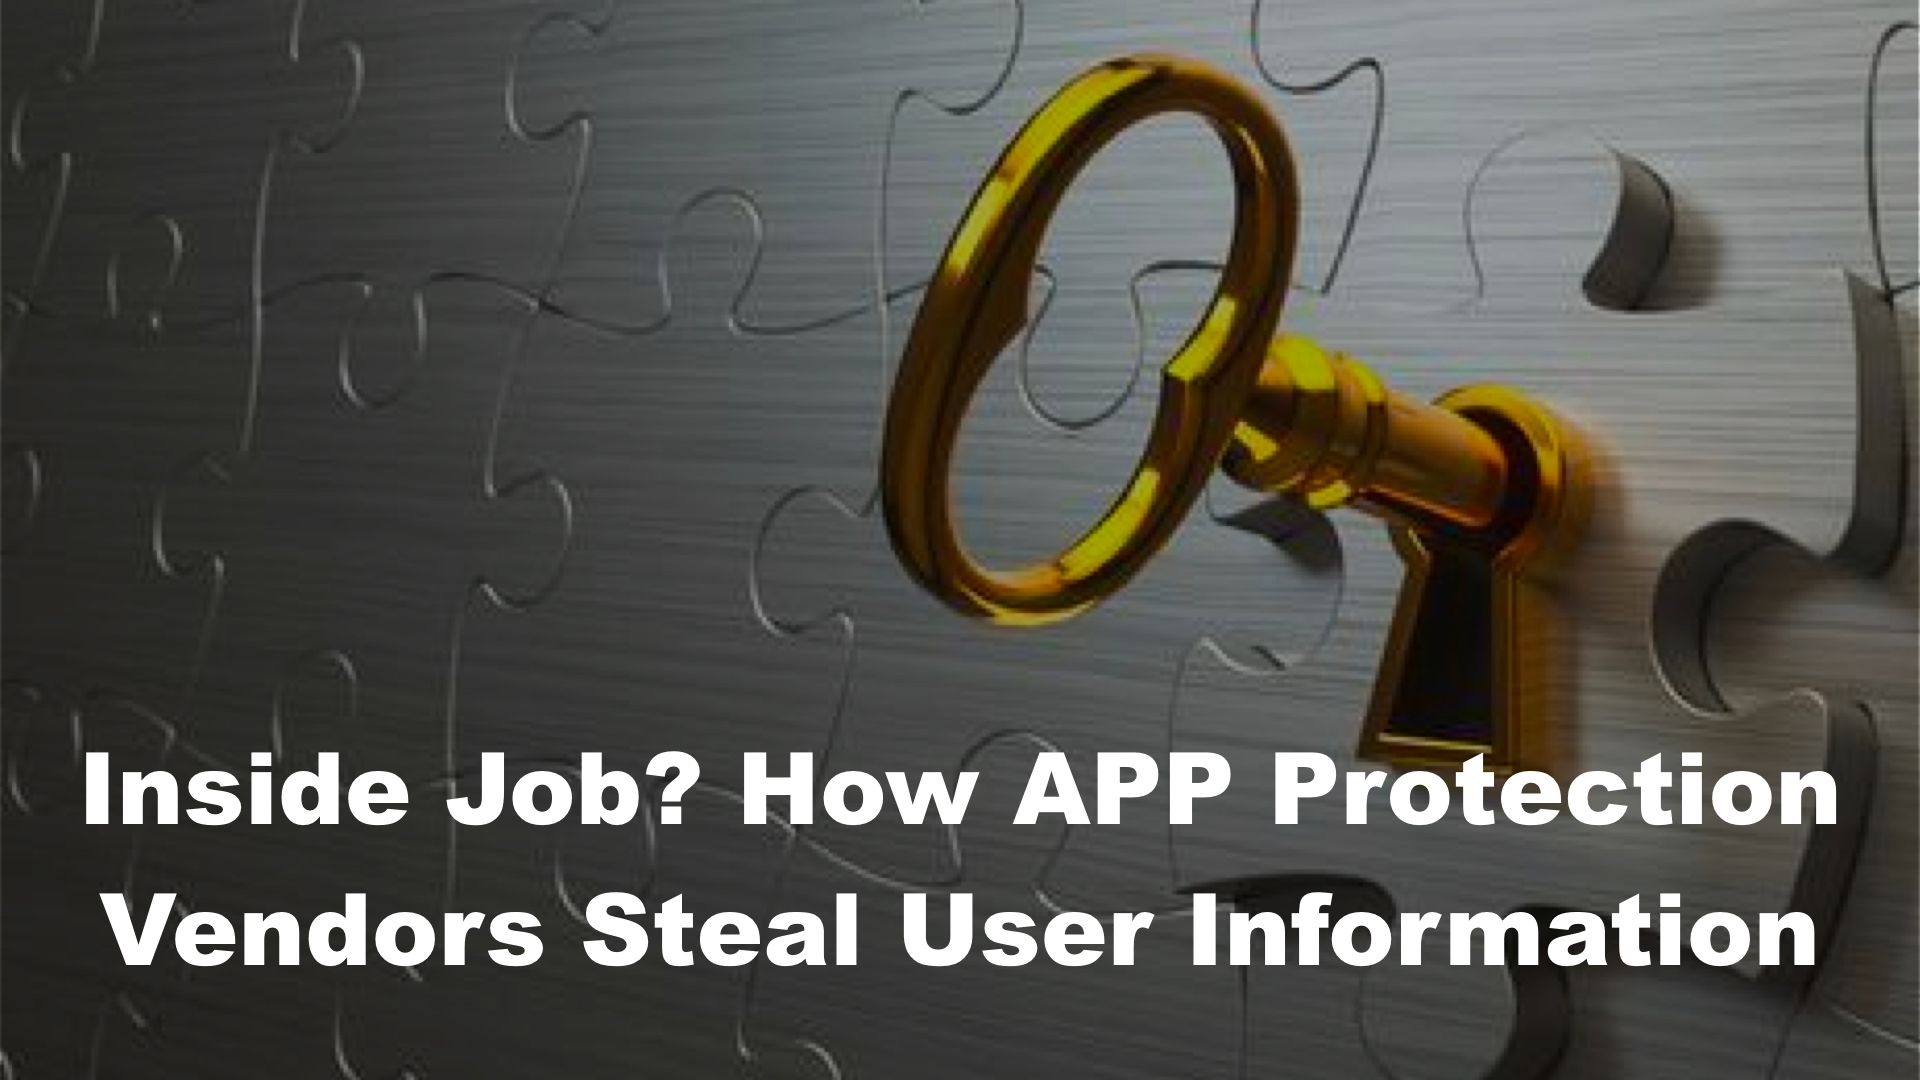 Inside Job?  How APP Protection Vendors Steal User Information